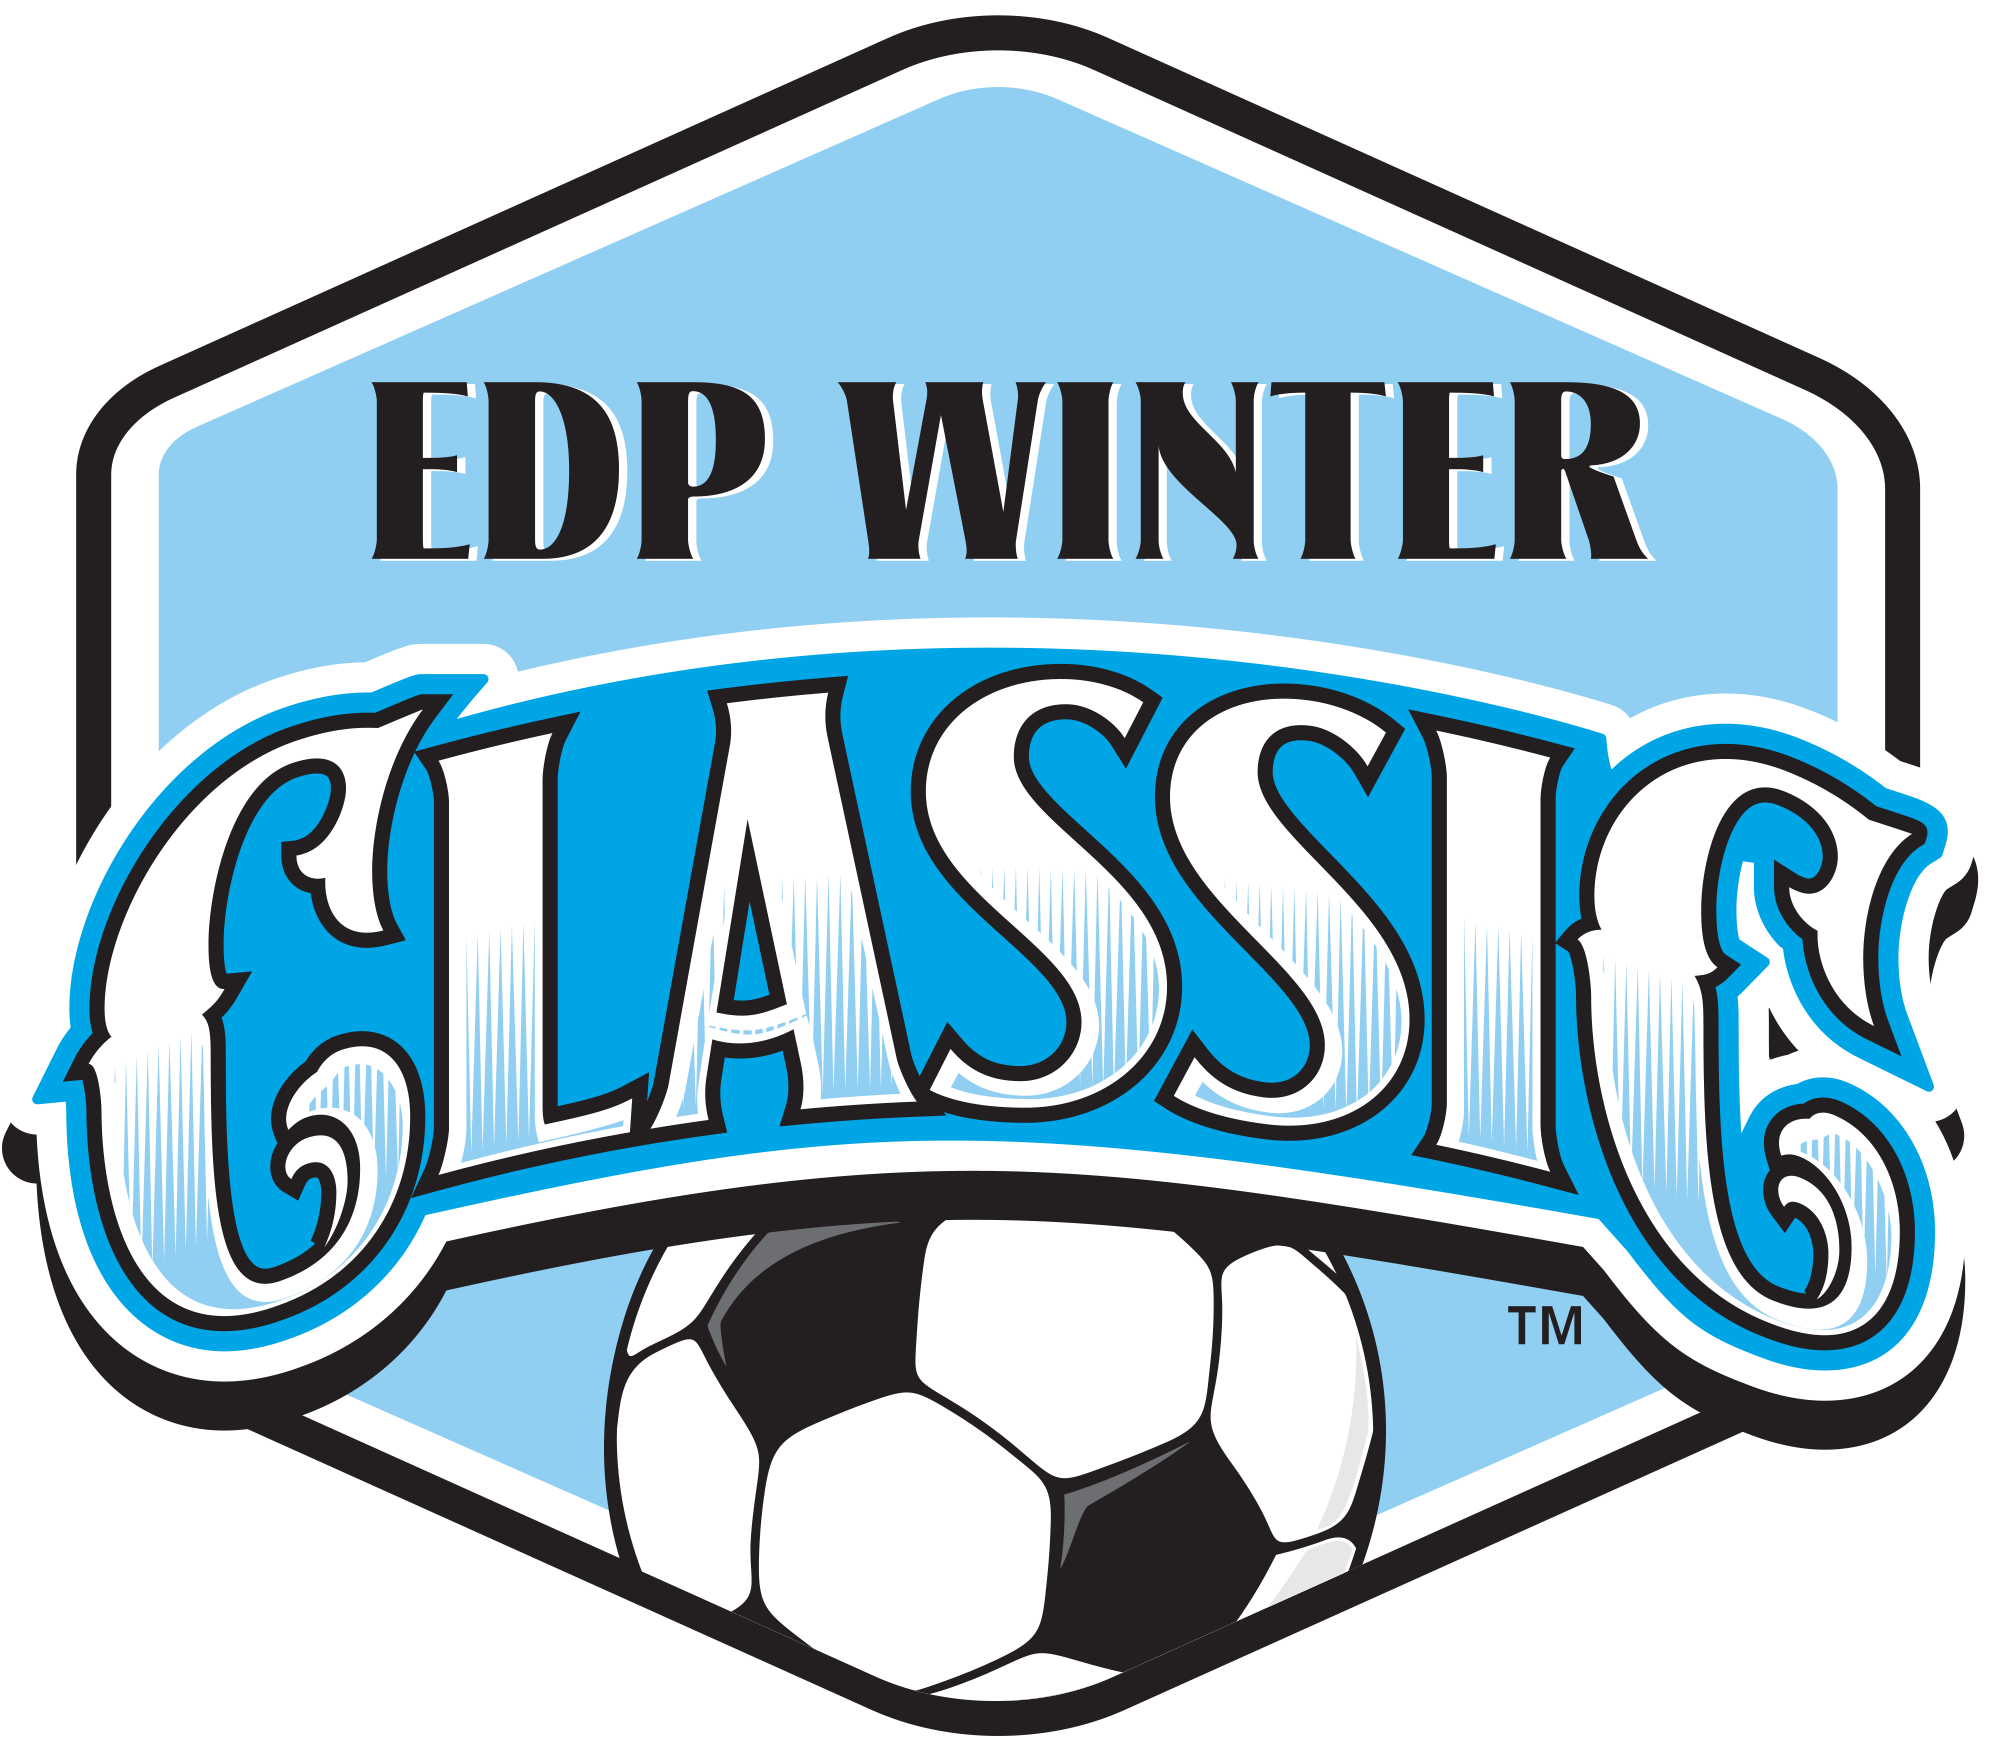 Twin valley youth football clipart picture transparent stock EDP Winter Classic Wrap Up picture transparent stock